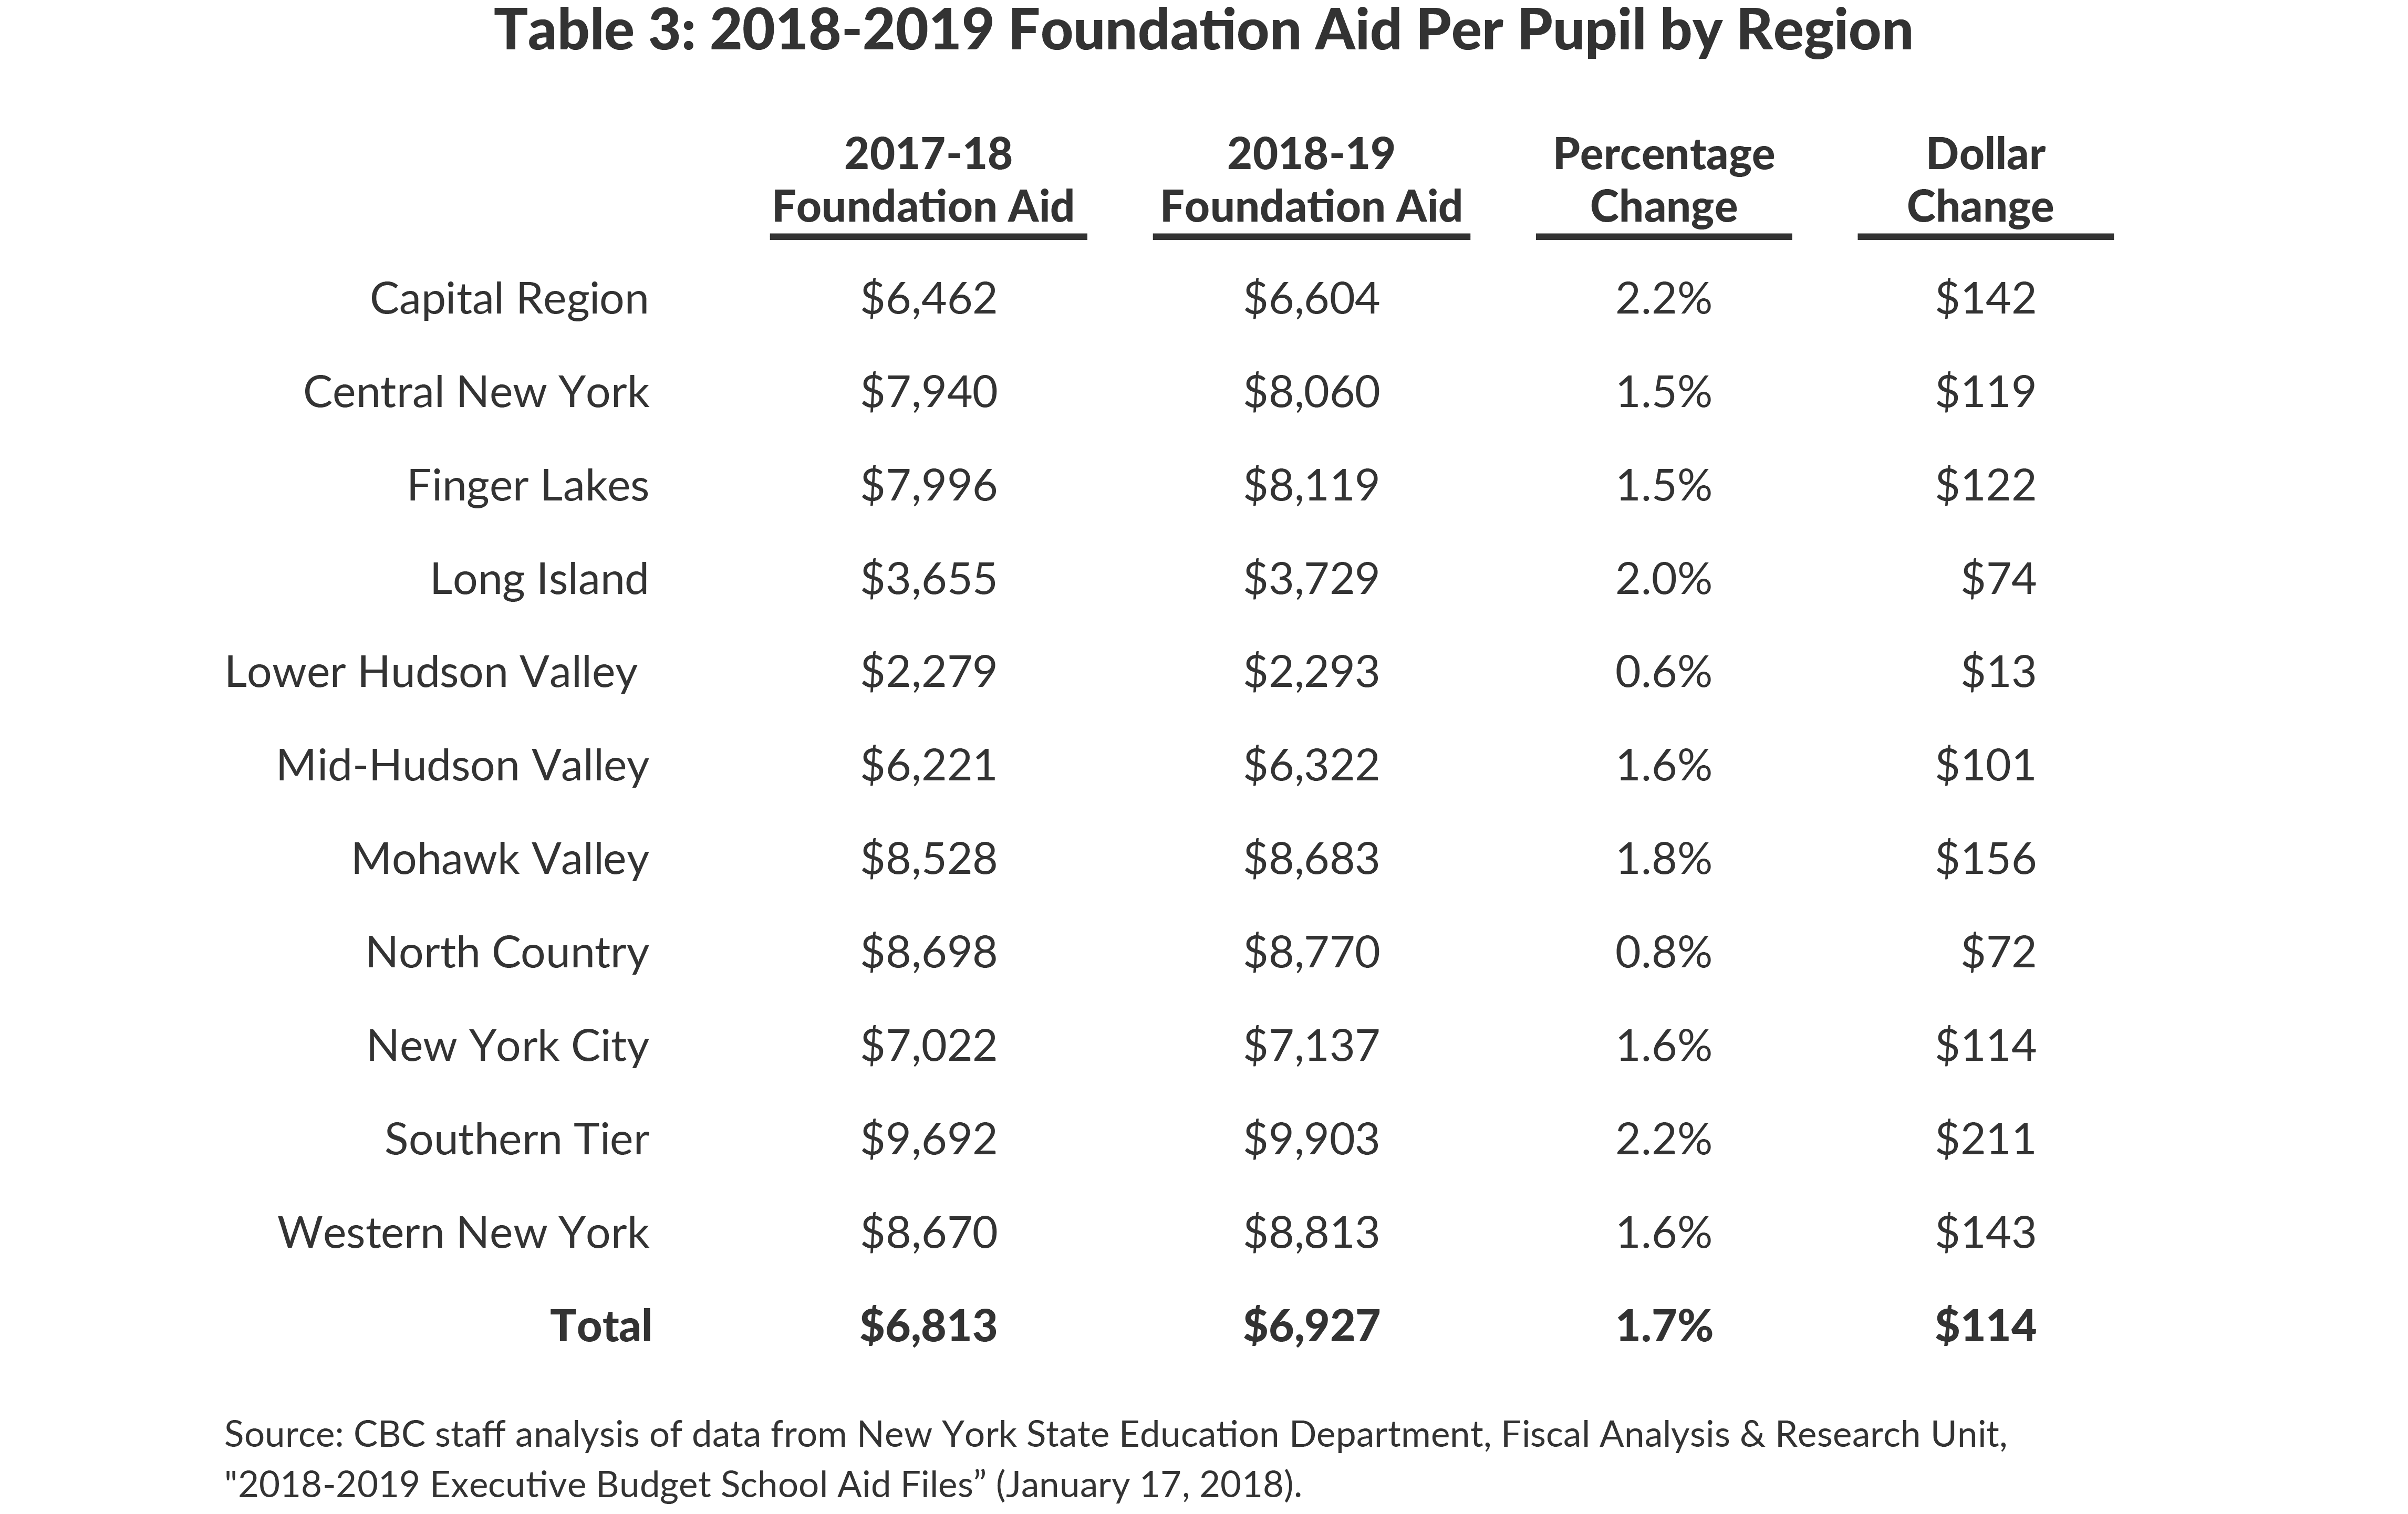 Table 3: 2018-2019 Foundation Aid Per Pupil by Region